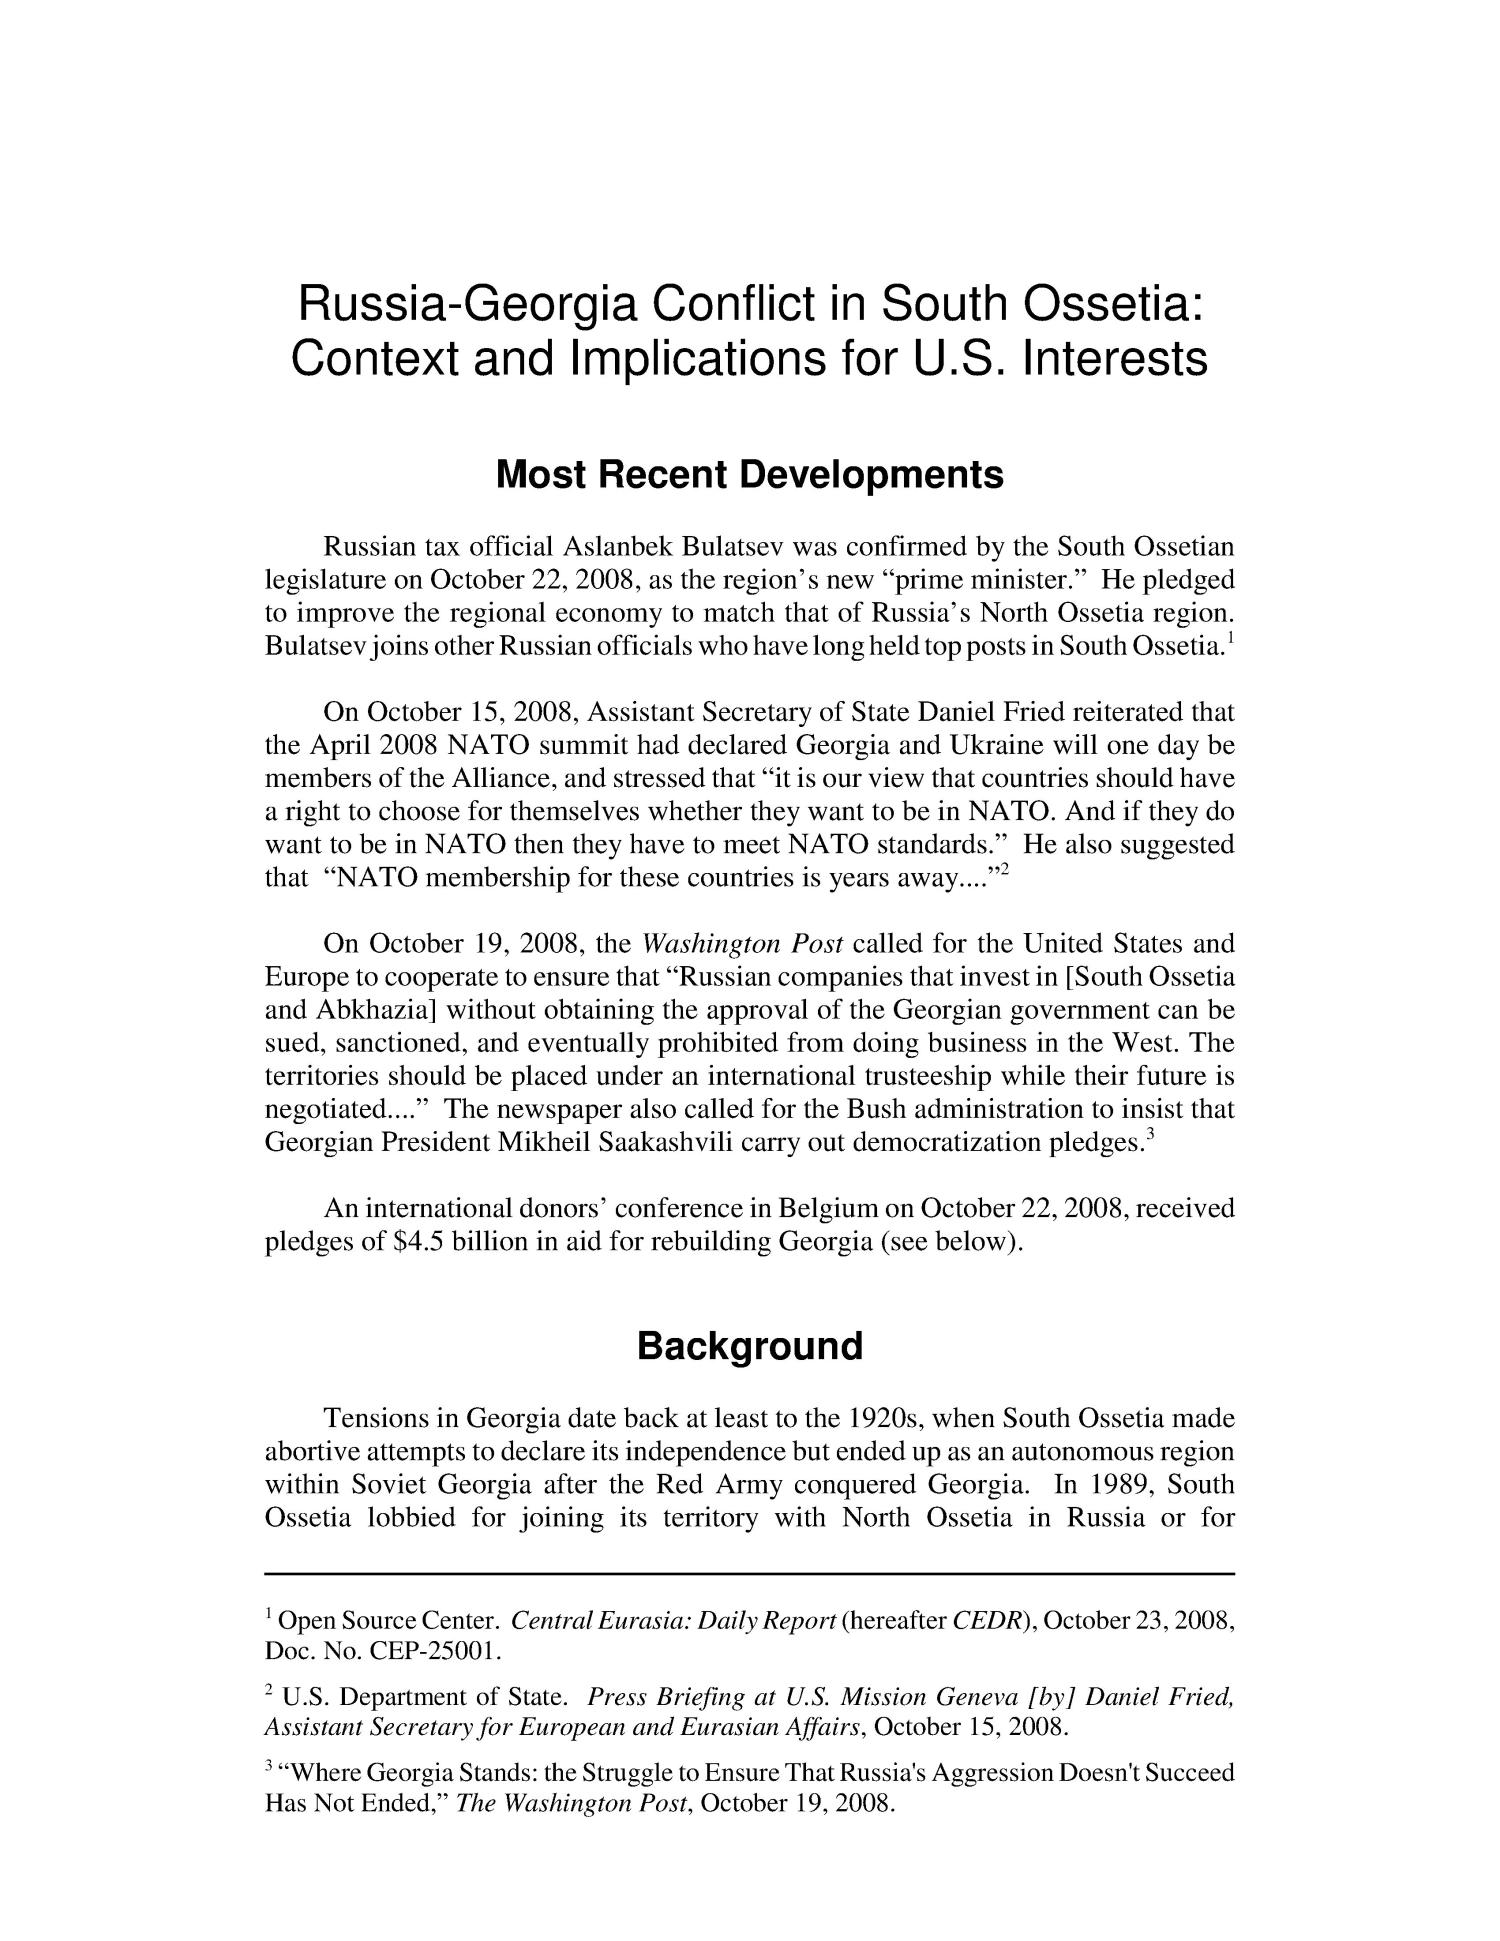 Russia-Georgia Conflict in South Ossetia: Context and Implications for U.S. Interests                                                                                                      [Sequence #]: 4 of 41